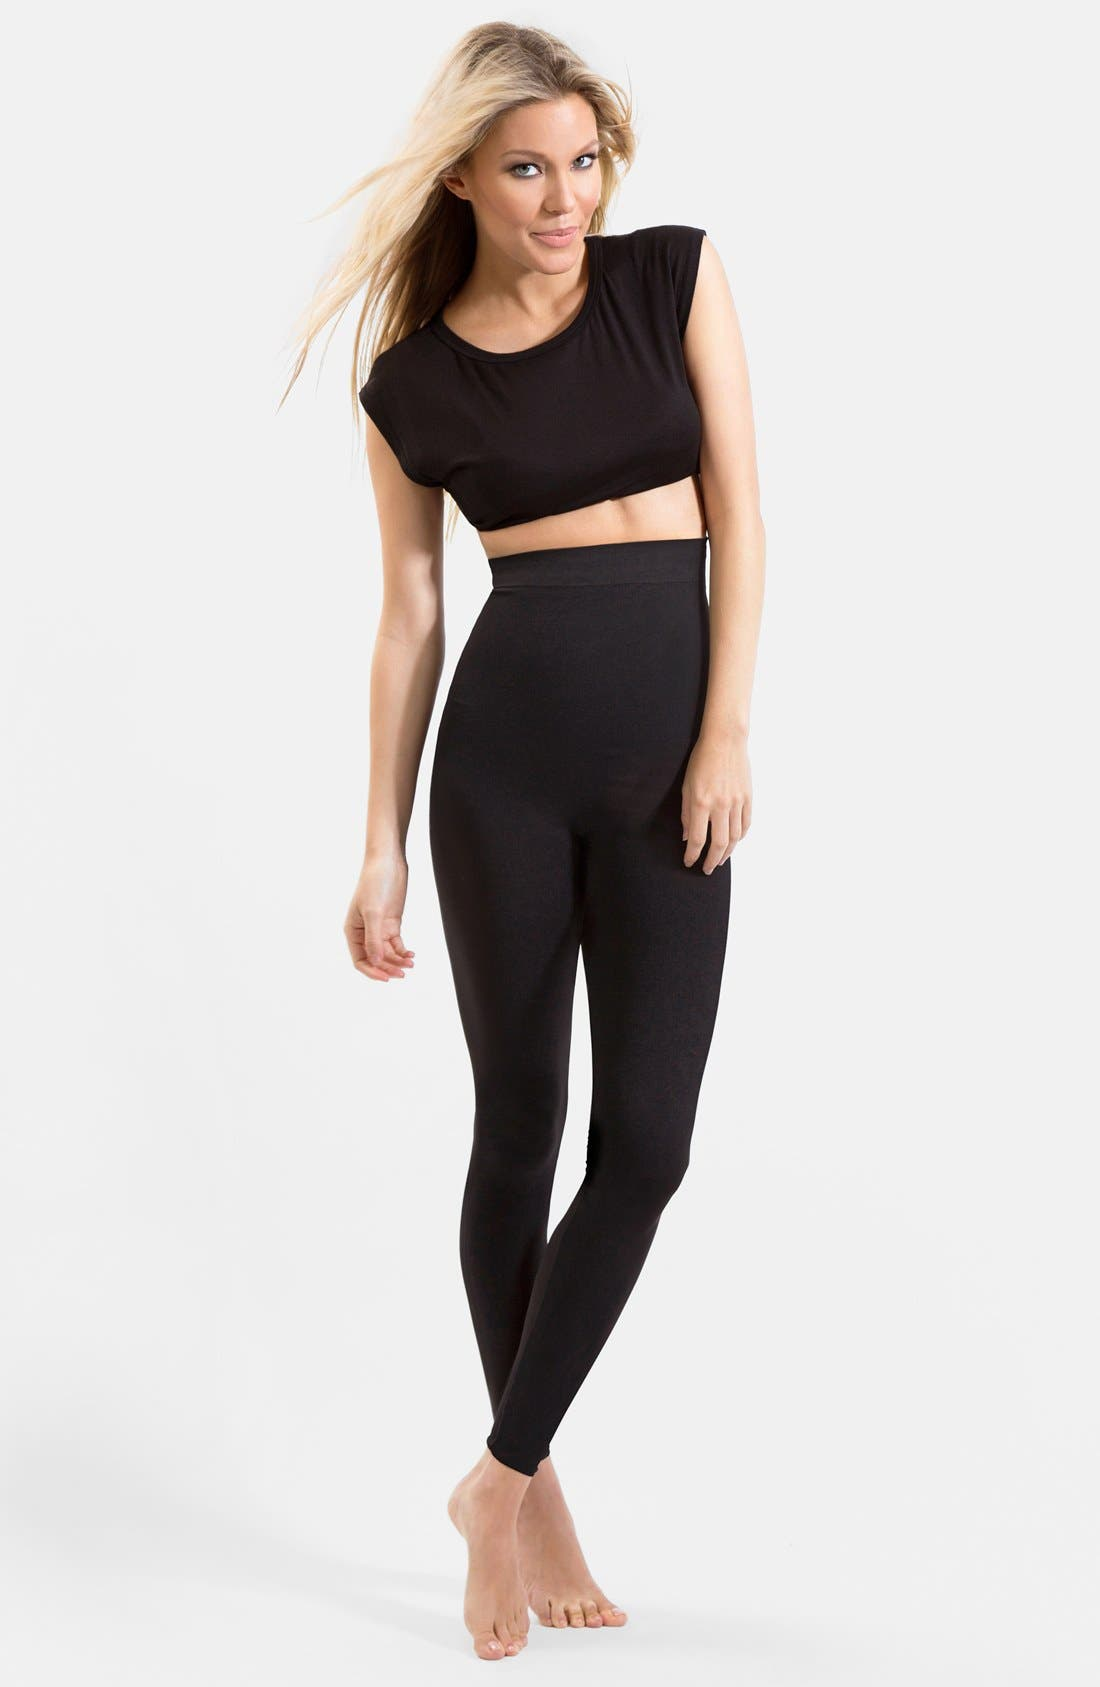 'High Performance' High Waisted Maternity/Postpartum Support Leggings,                             Alternate thumbnail 4, color,                             001